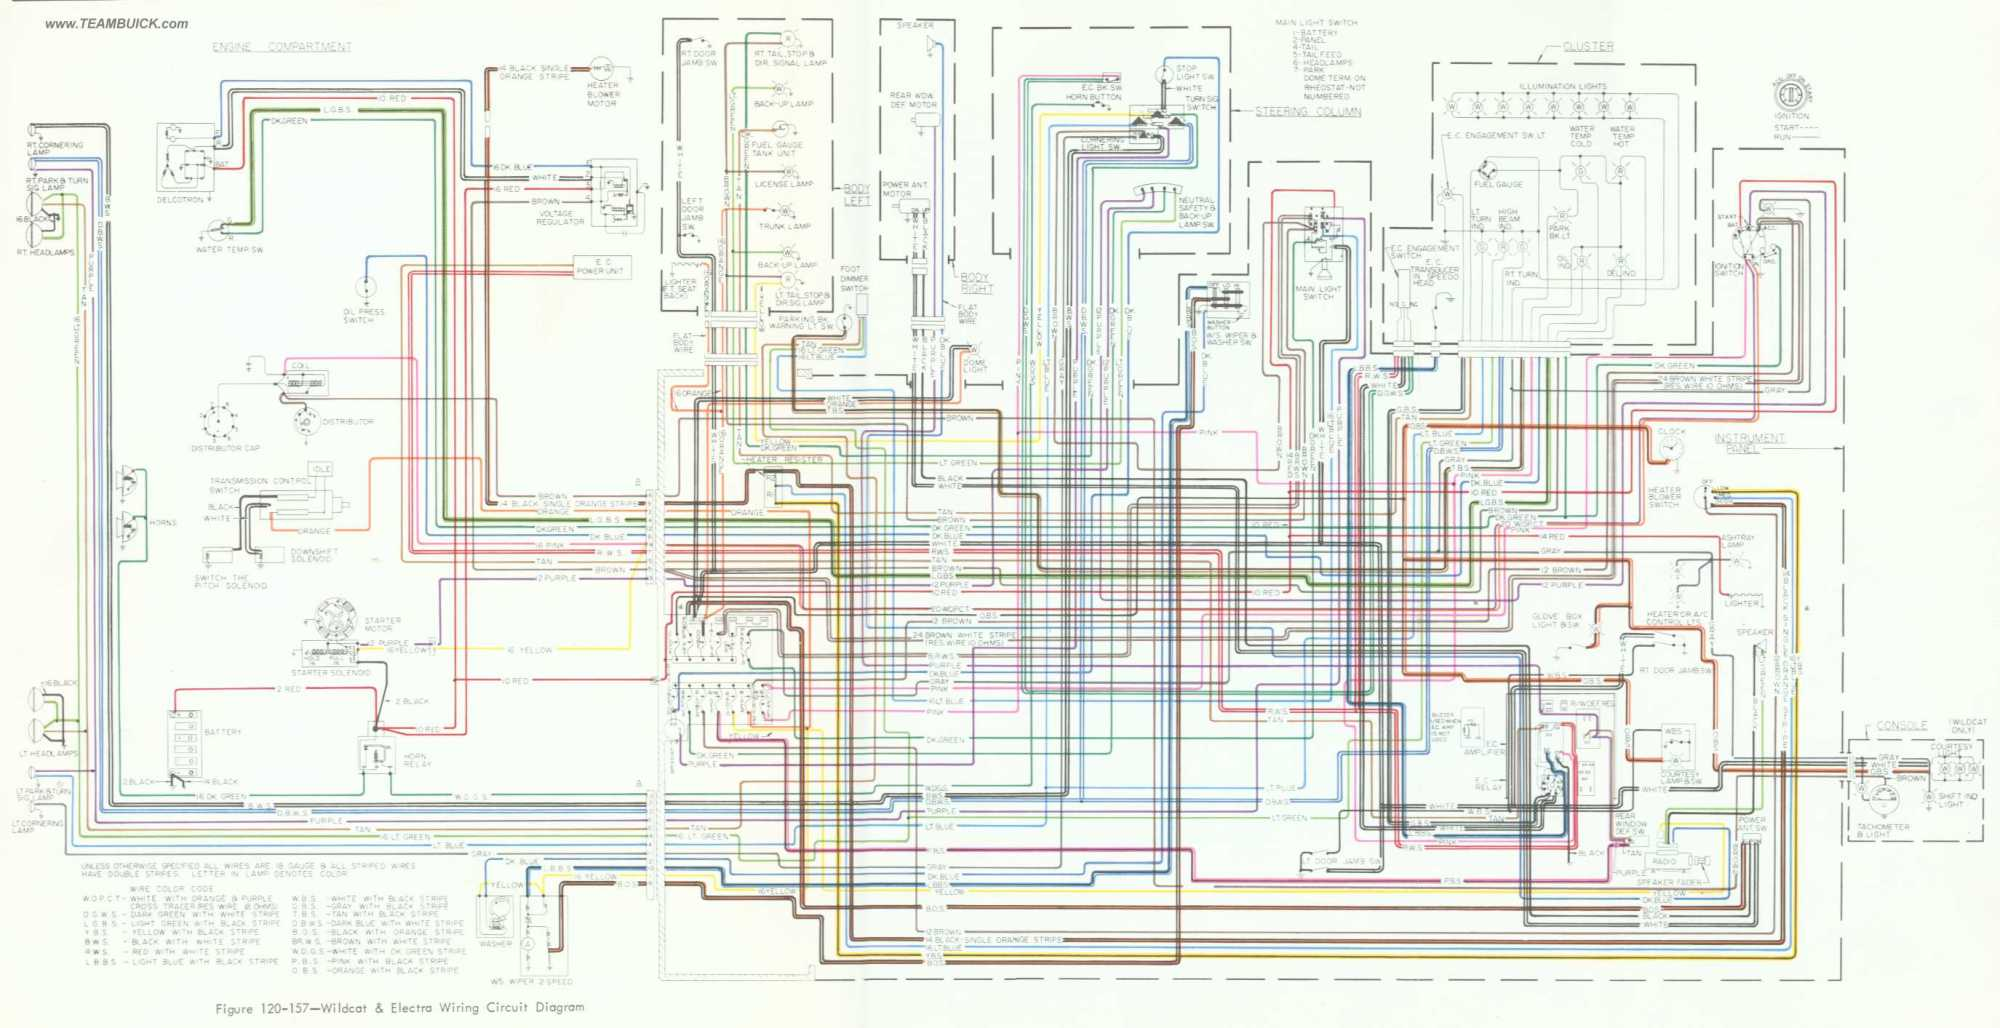 hight resolution of 1966 buick wildcat and electra wiring diagram right click to save to your